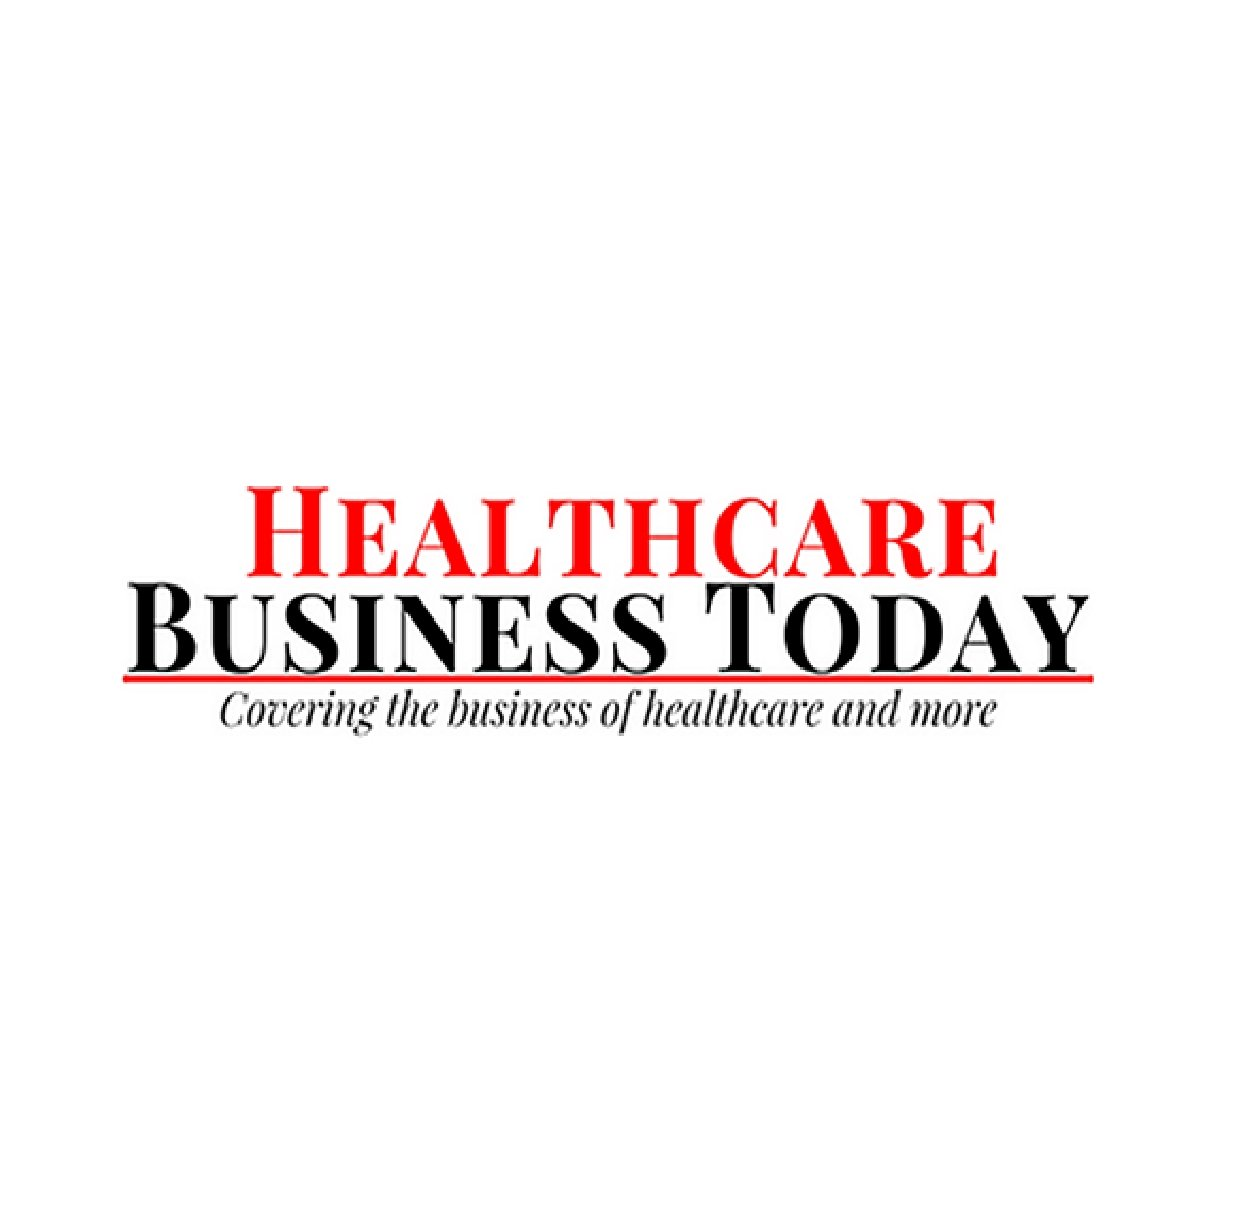 Enabling Greater Connected Care with Social Determinants of Health and Digital Health Solutions